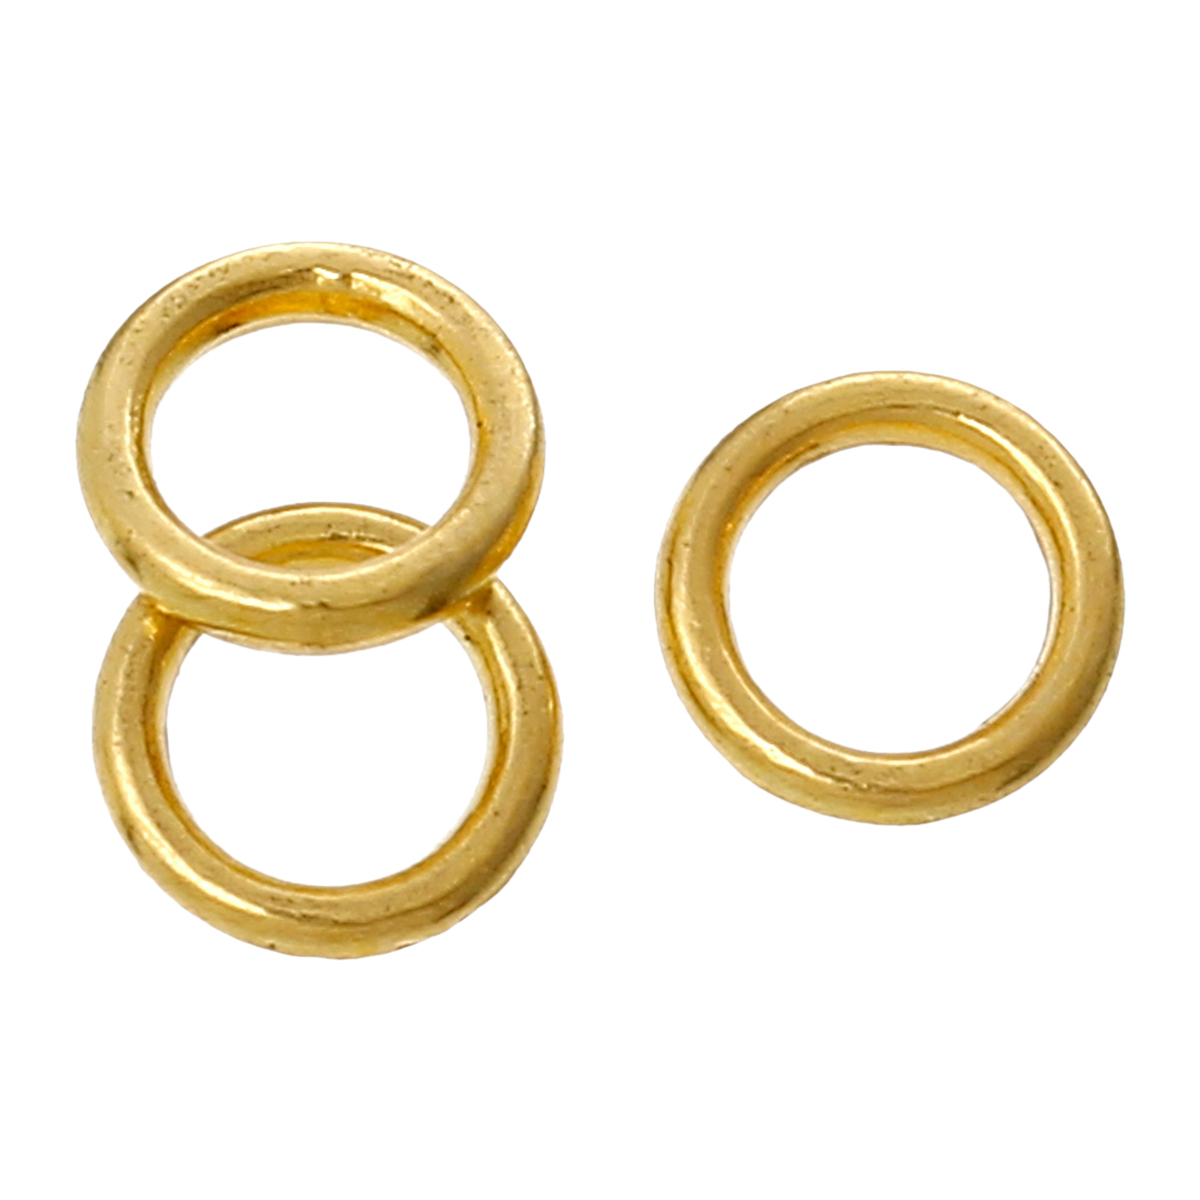 DoreenBeads Zinc Metal Alloy Closed Soldered Jump Rings Circle Ring Gold Color 6mm( 2/8